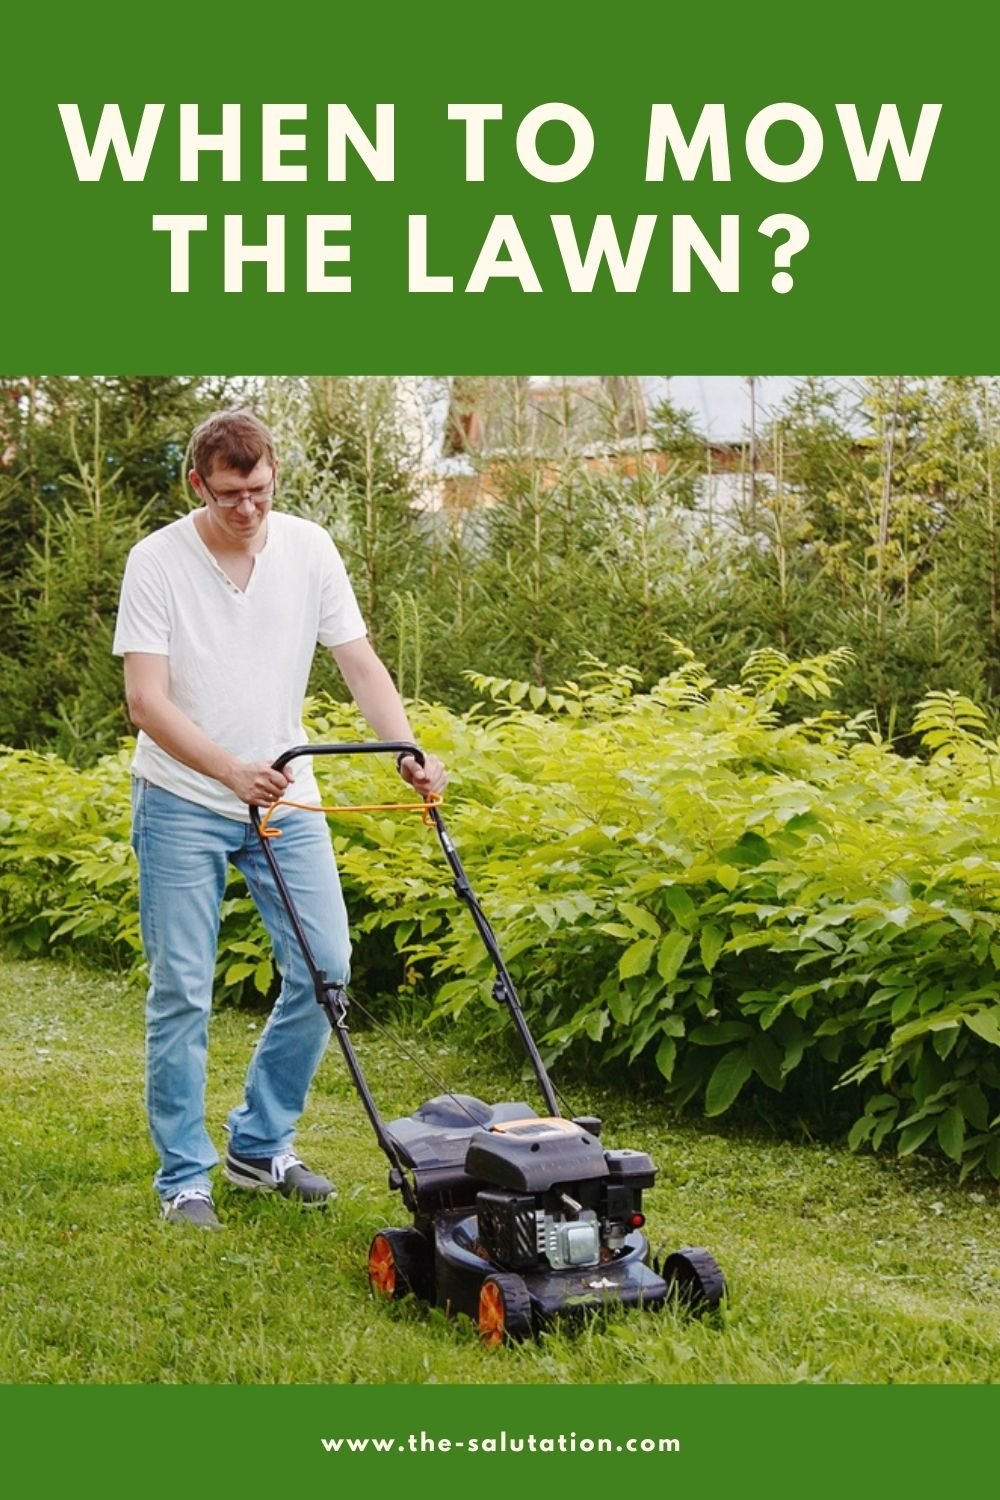 When to Mow the Lawn (7 Tips) 1